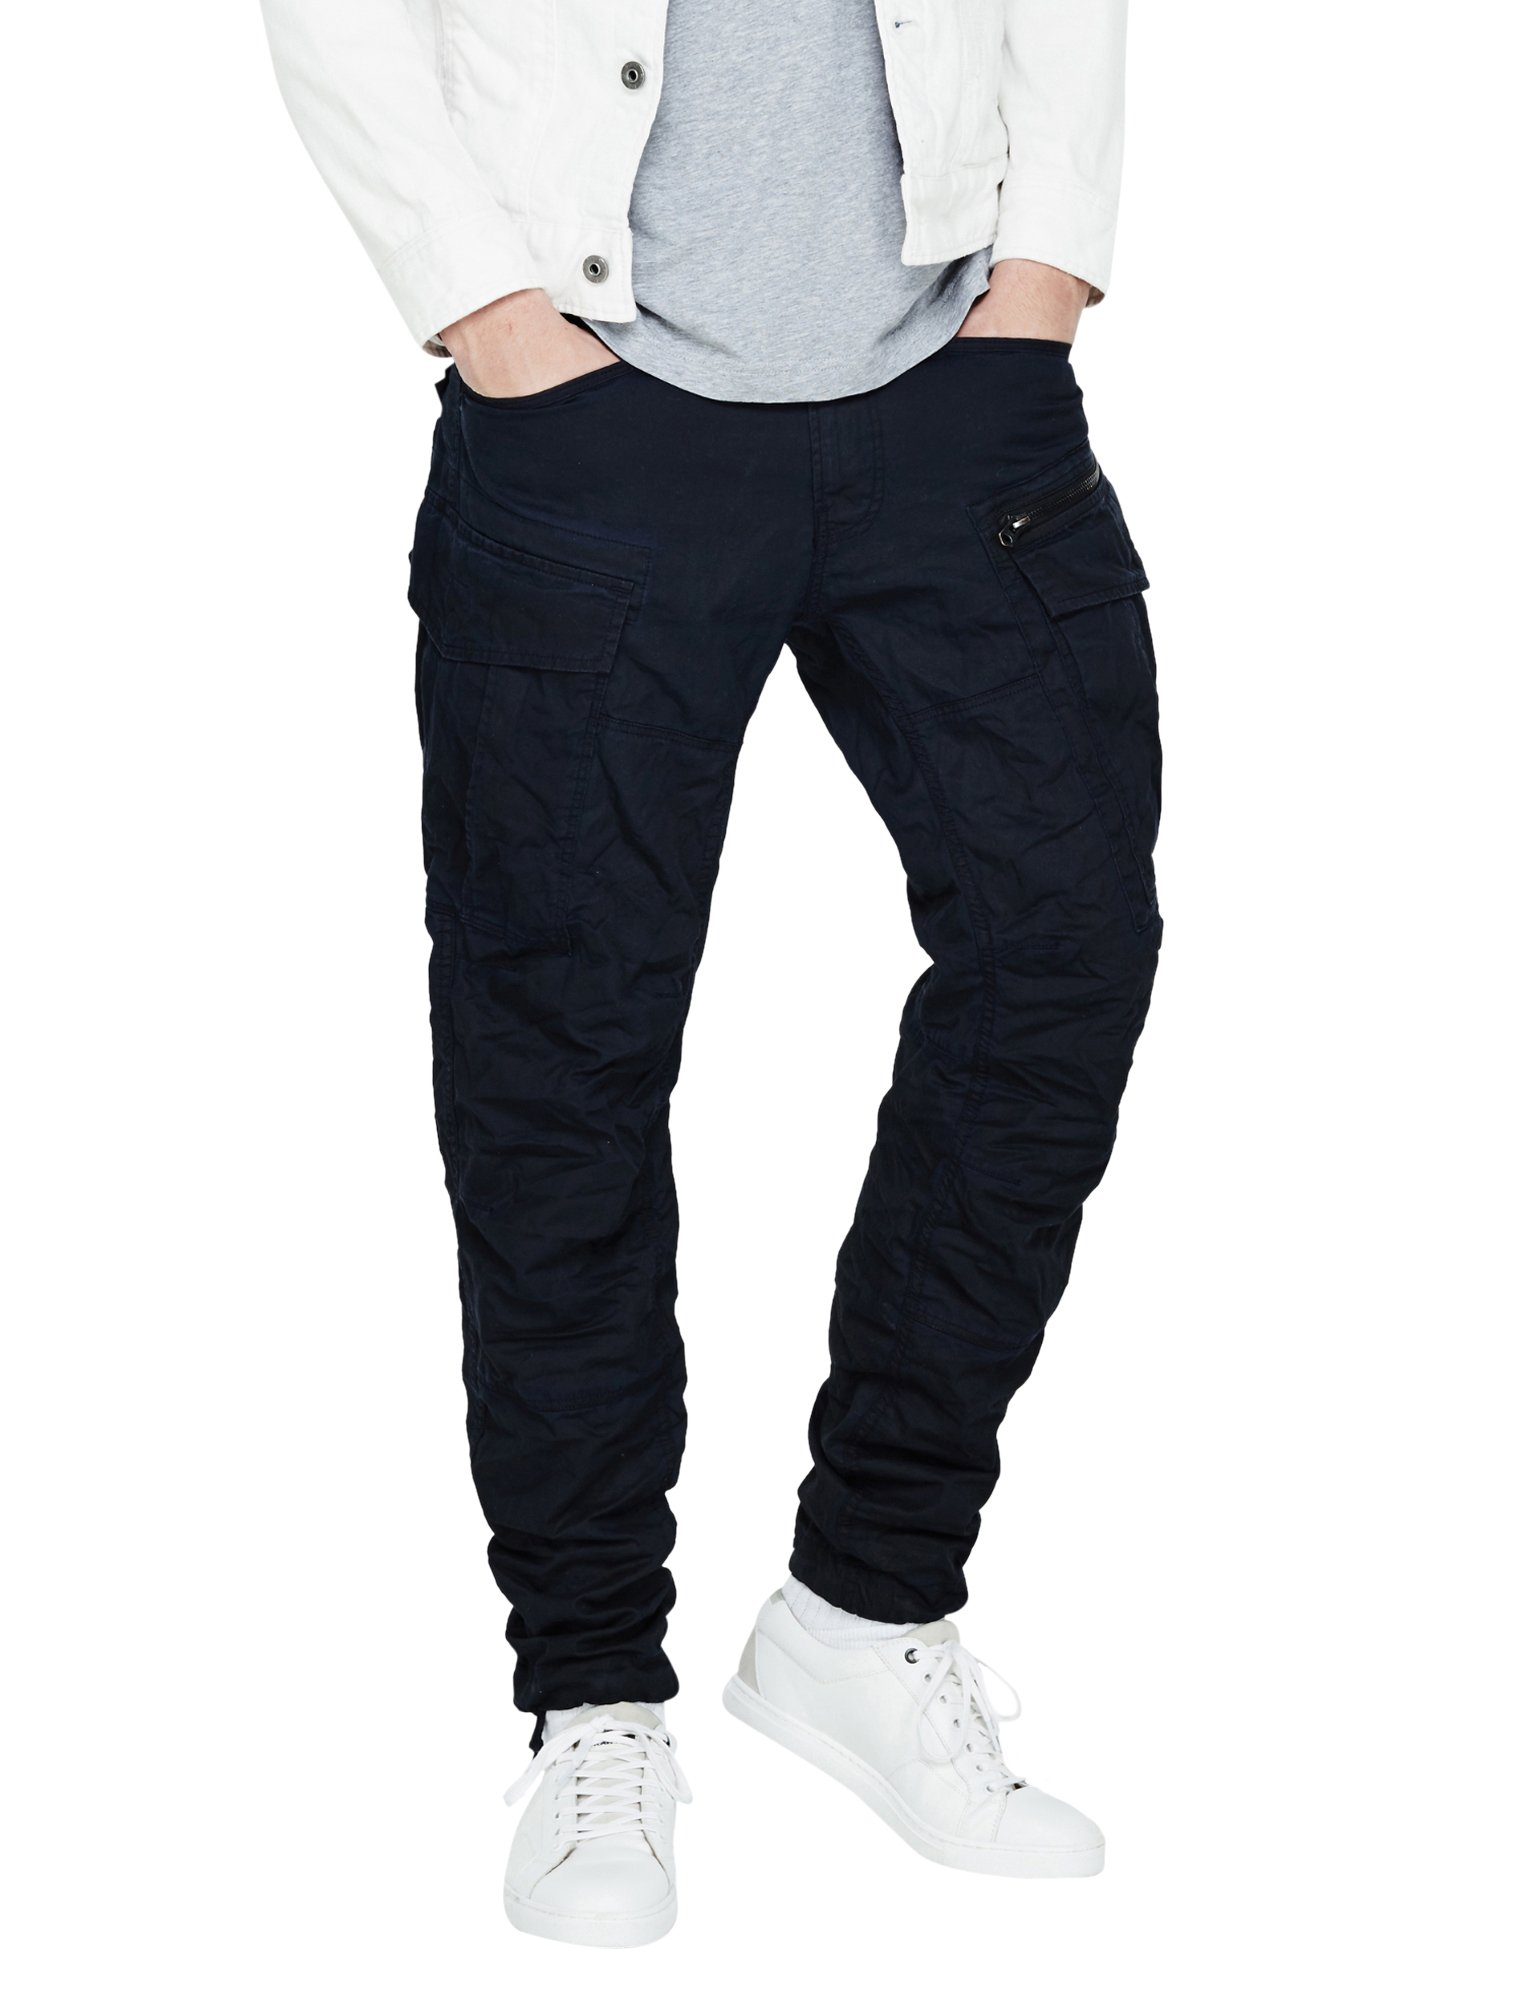 G-Star Rovic Zip 3D Tapered Pants Size 30x32